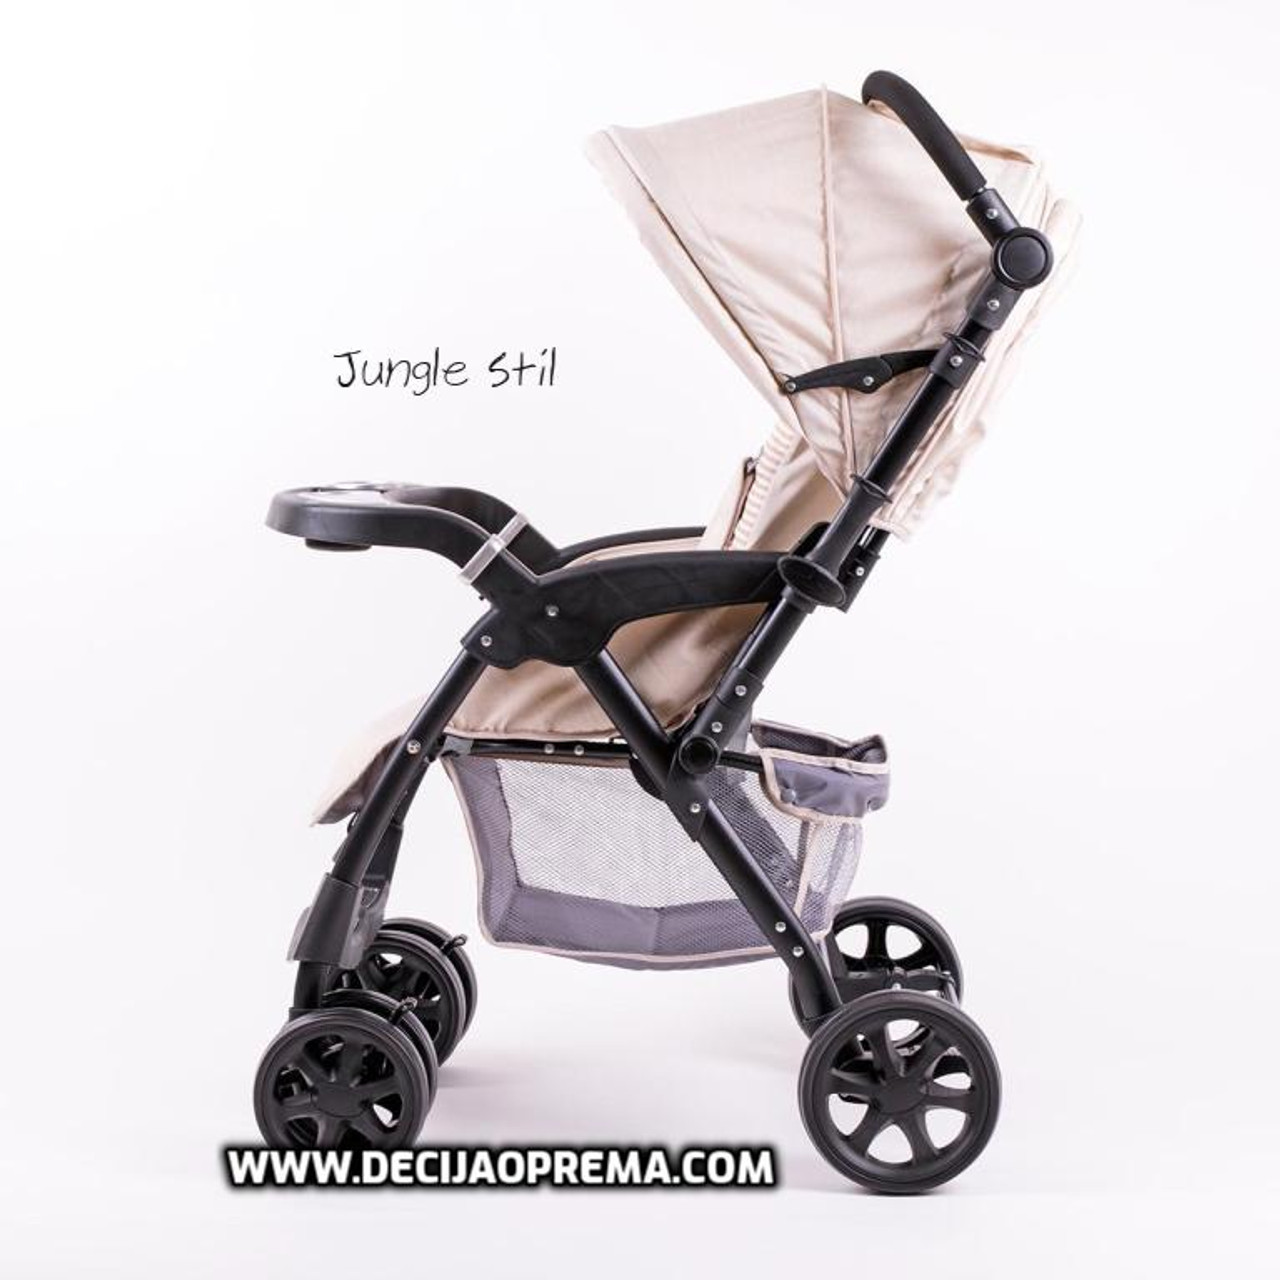 Kolica za bebe Jungle Stil Beige